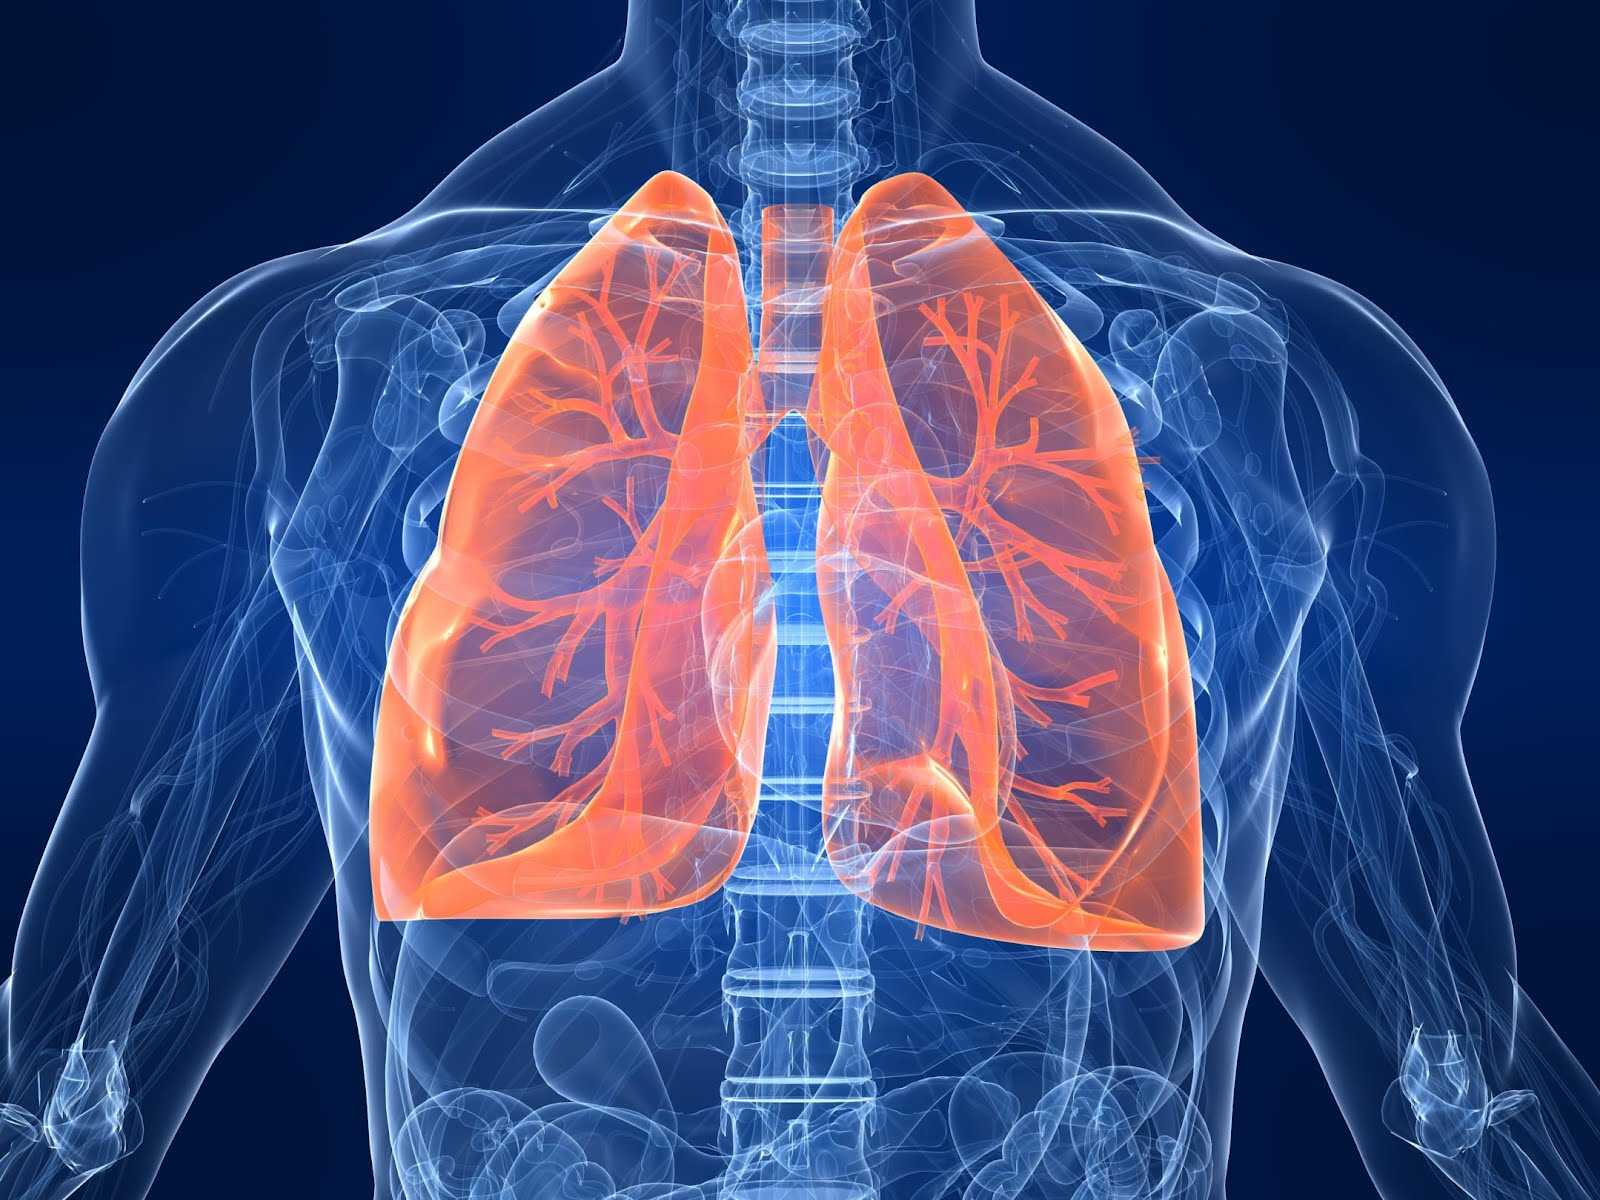 cartoon x-ray diagram of lungs within the human body